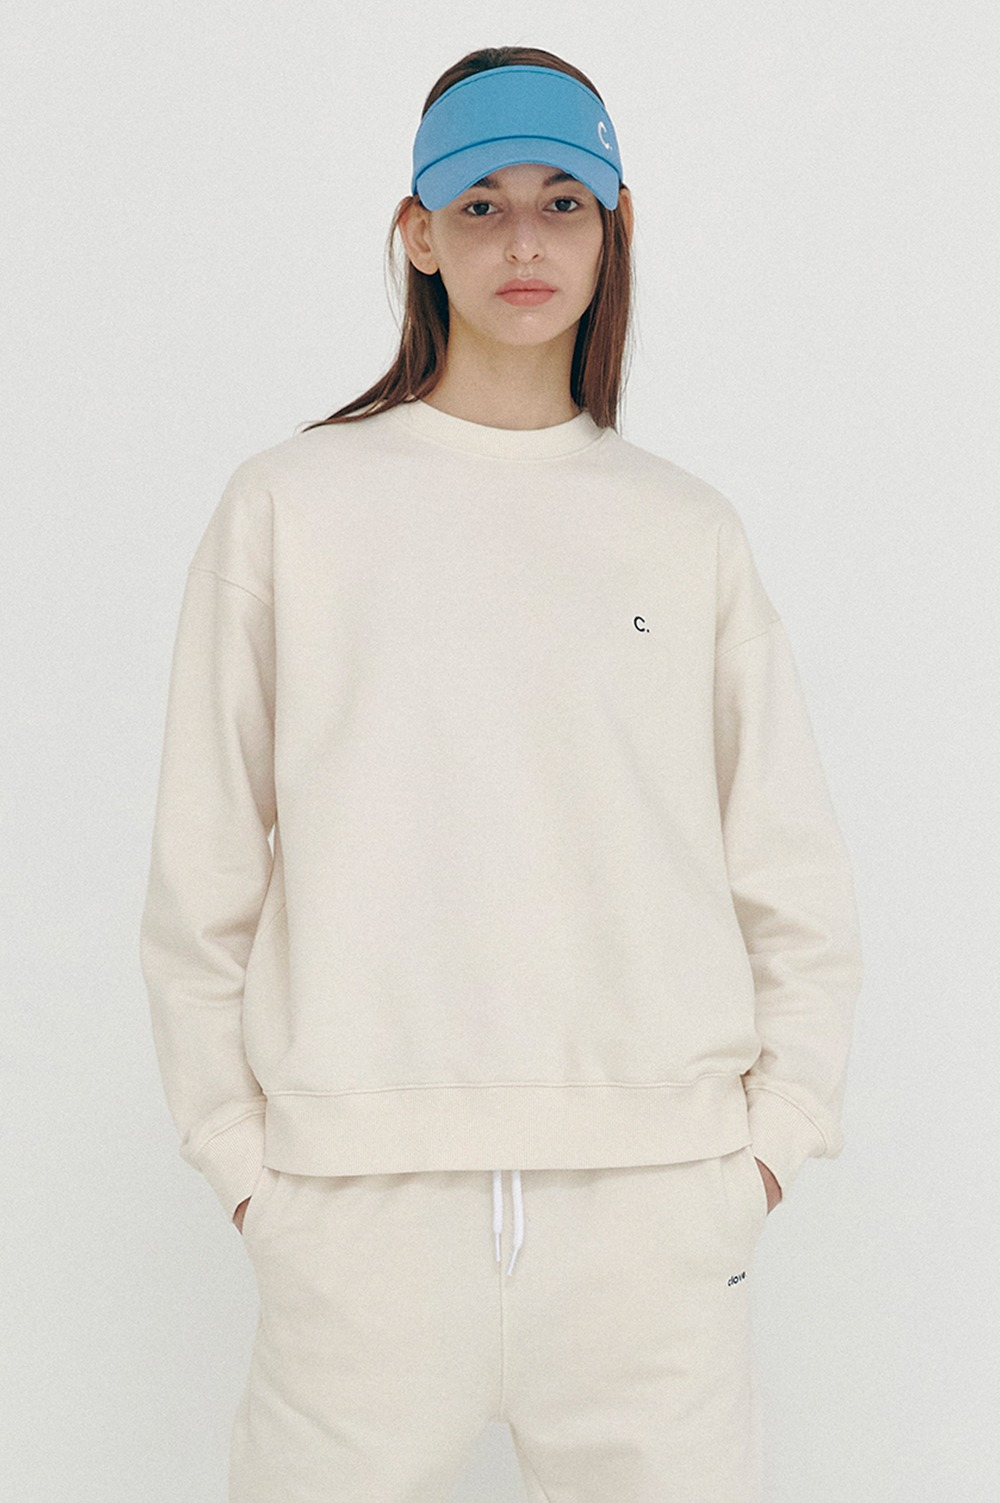 clove - Active Sweatshirts_Women Light Beige